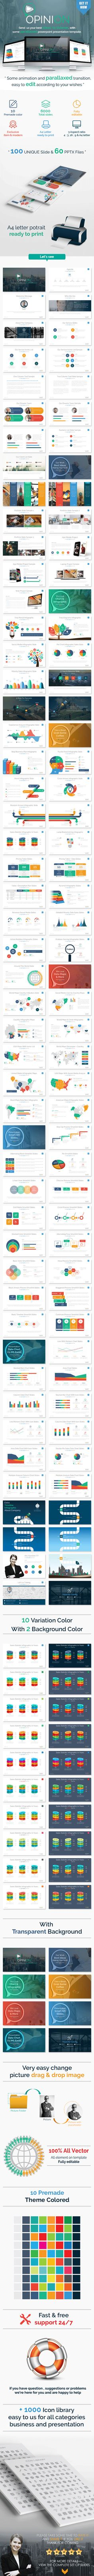 OPINION - Multipurpose Presentation Template. Download here: http://graphicriver.net/item/opinion-multipurpose-presentation-template/15847402?ref=ksioks